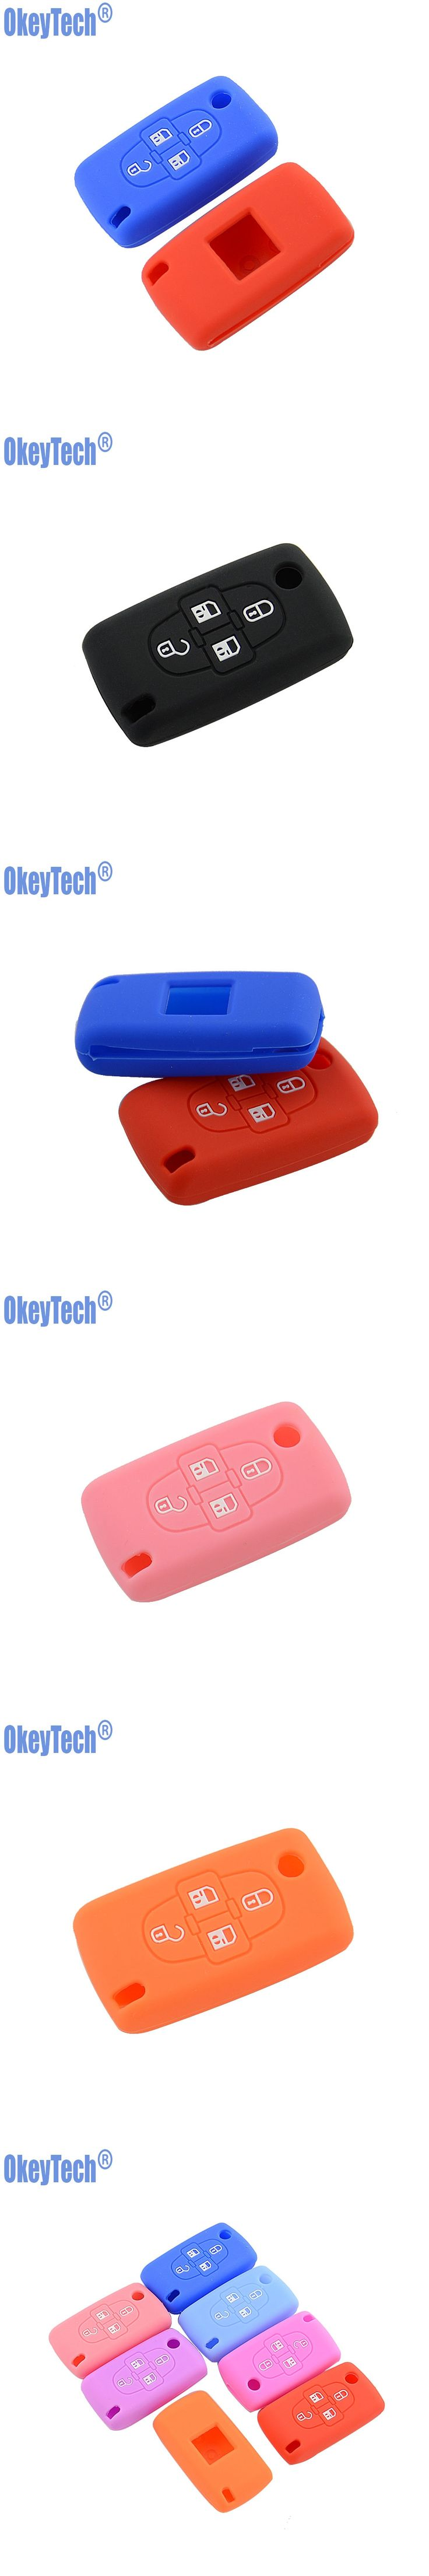 OkeyTech Silicone Car Key Fob Cover Case Skin For Peugeot Car Key 4 Buttons For Peugeot 1007 807 Protector Holder Free Shipping